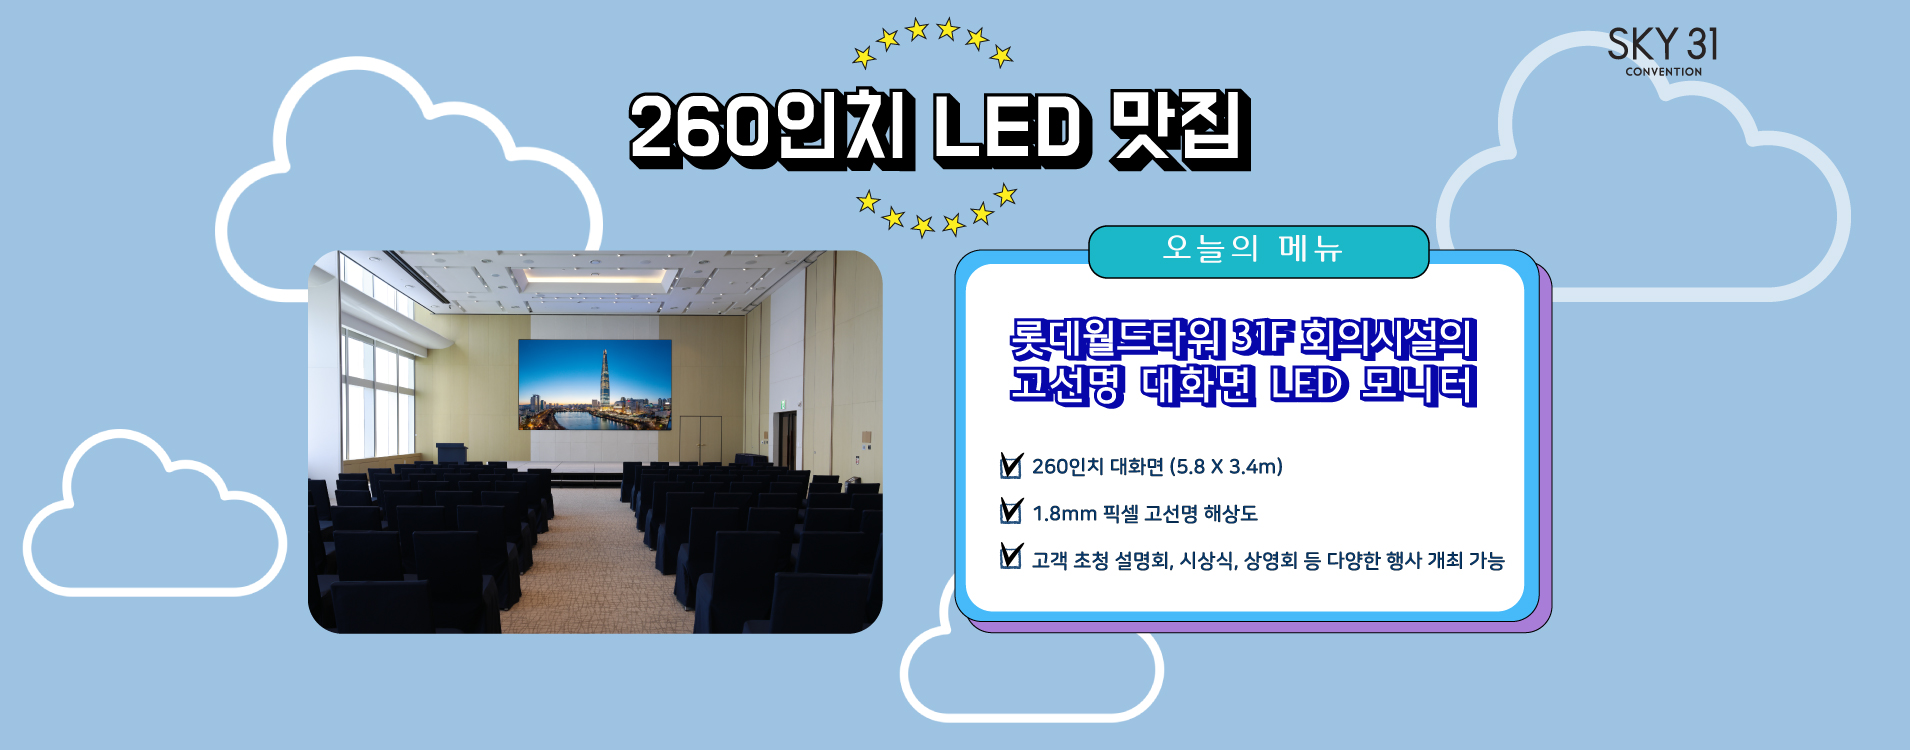 260인치 LED DISPLAY 설치